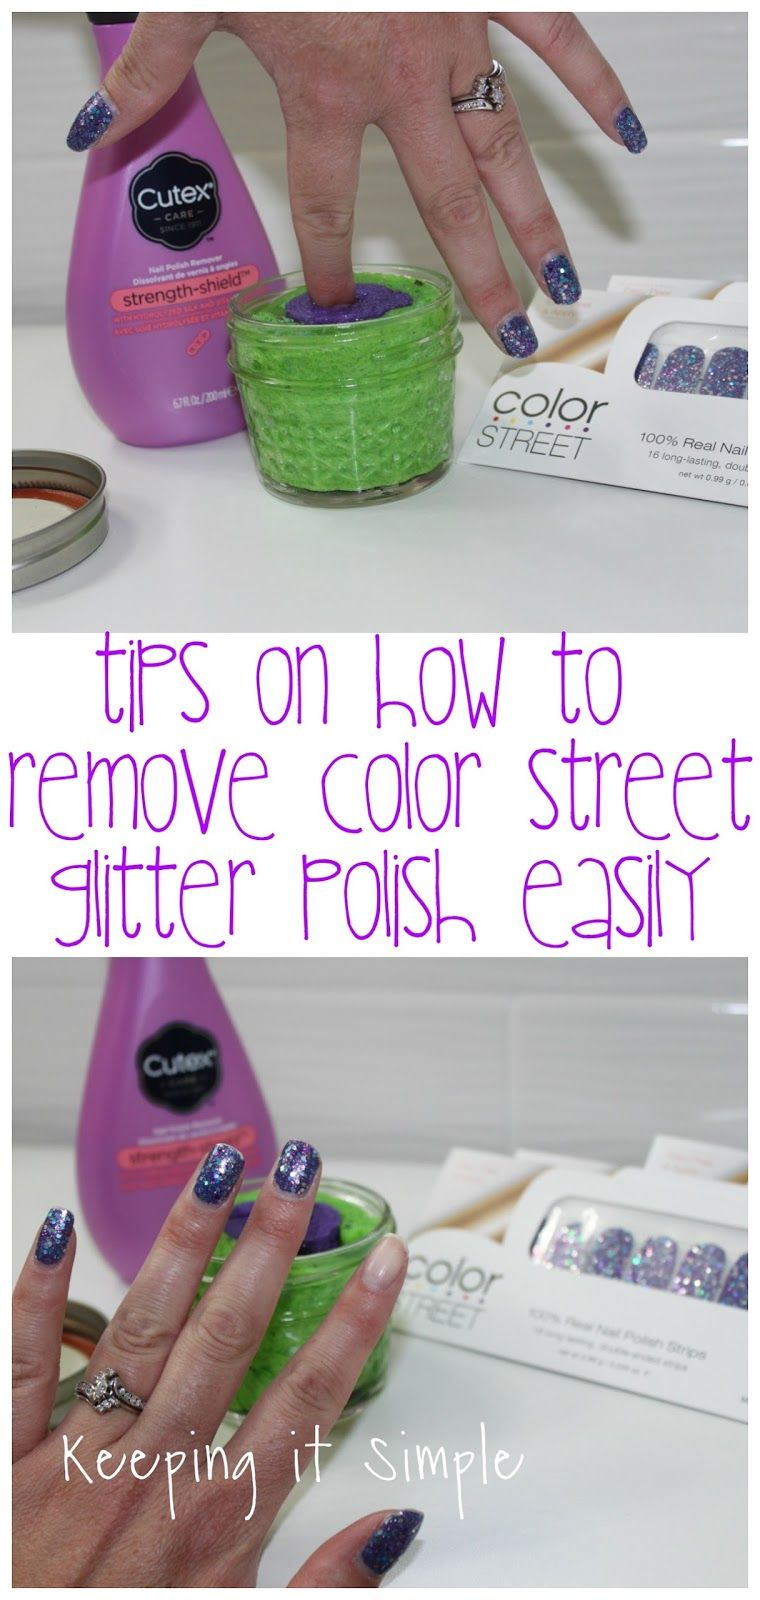 Tips On How To Remove Color Street Nails Easily Keeping It Simple Color Street Nails Color Street Nail Colors